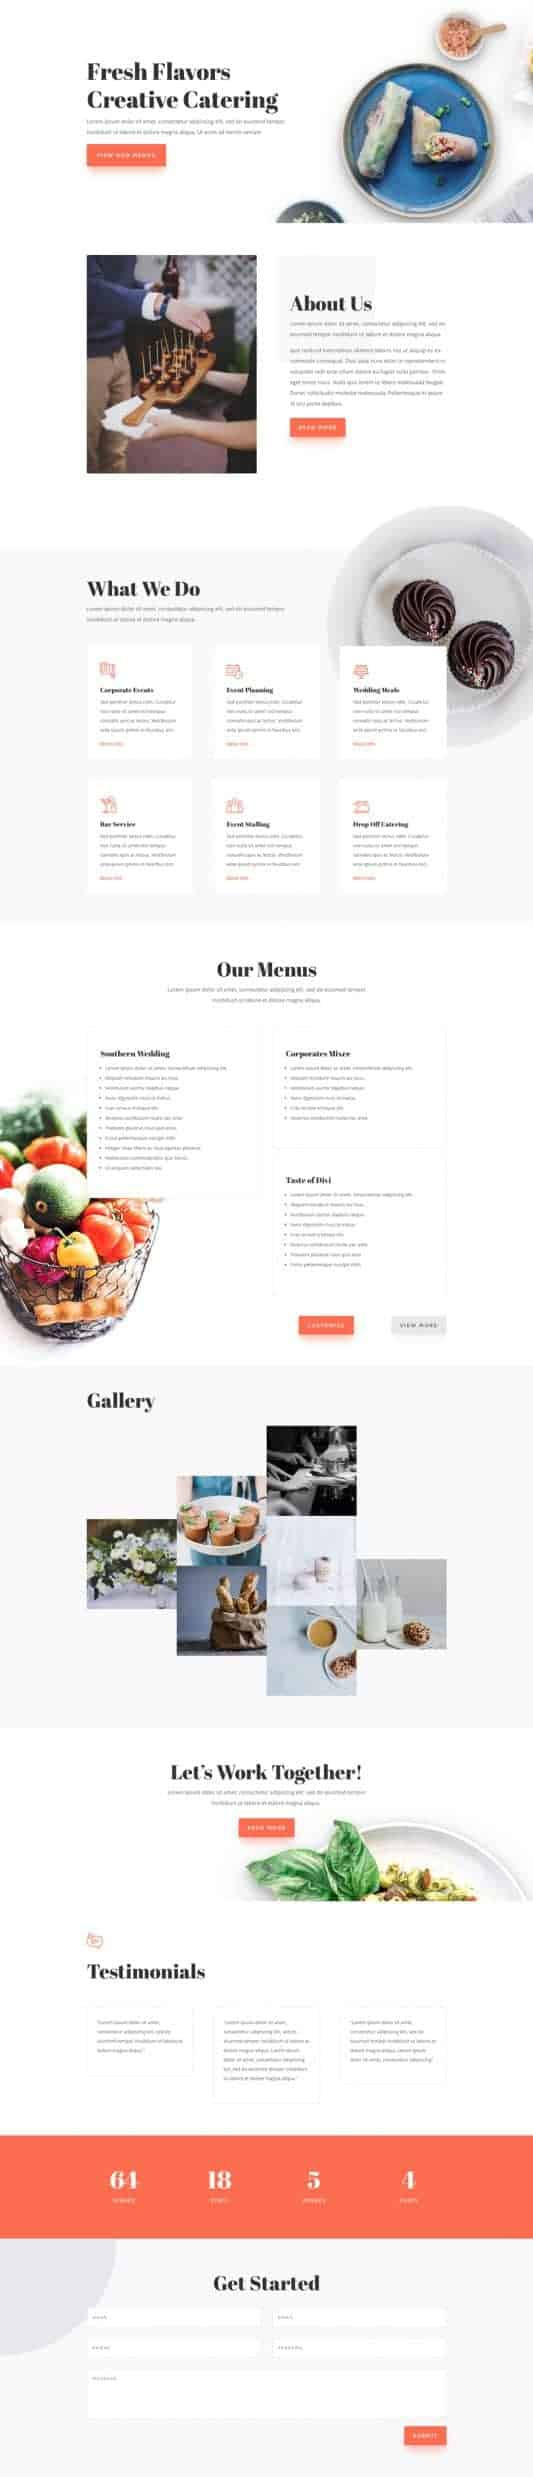 Food Catering Web Design 5